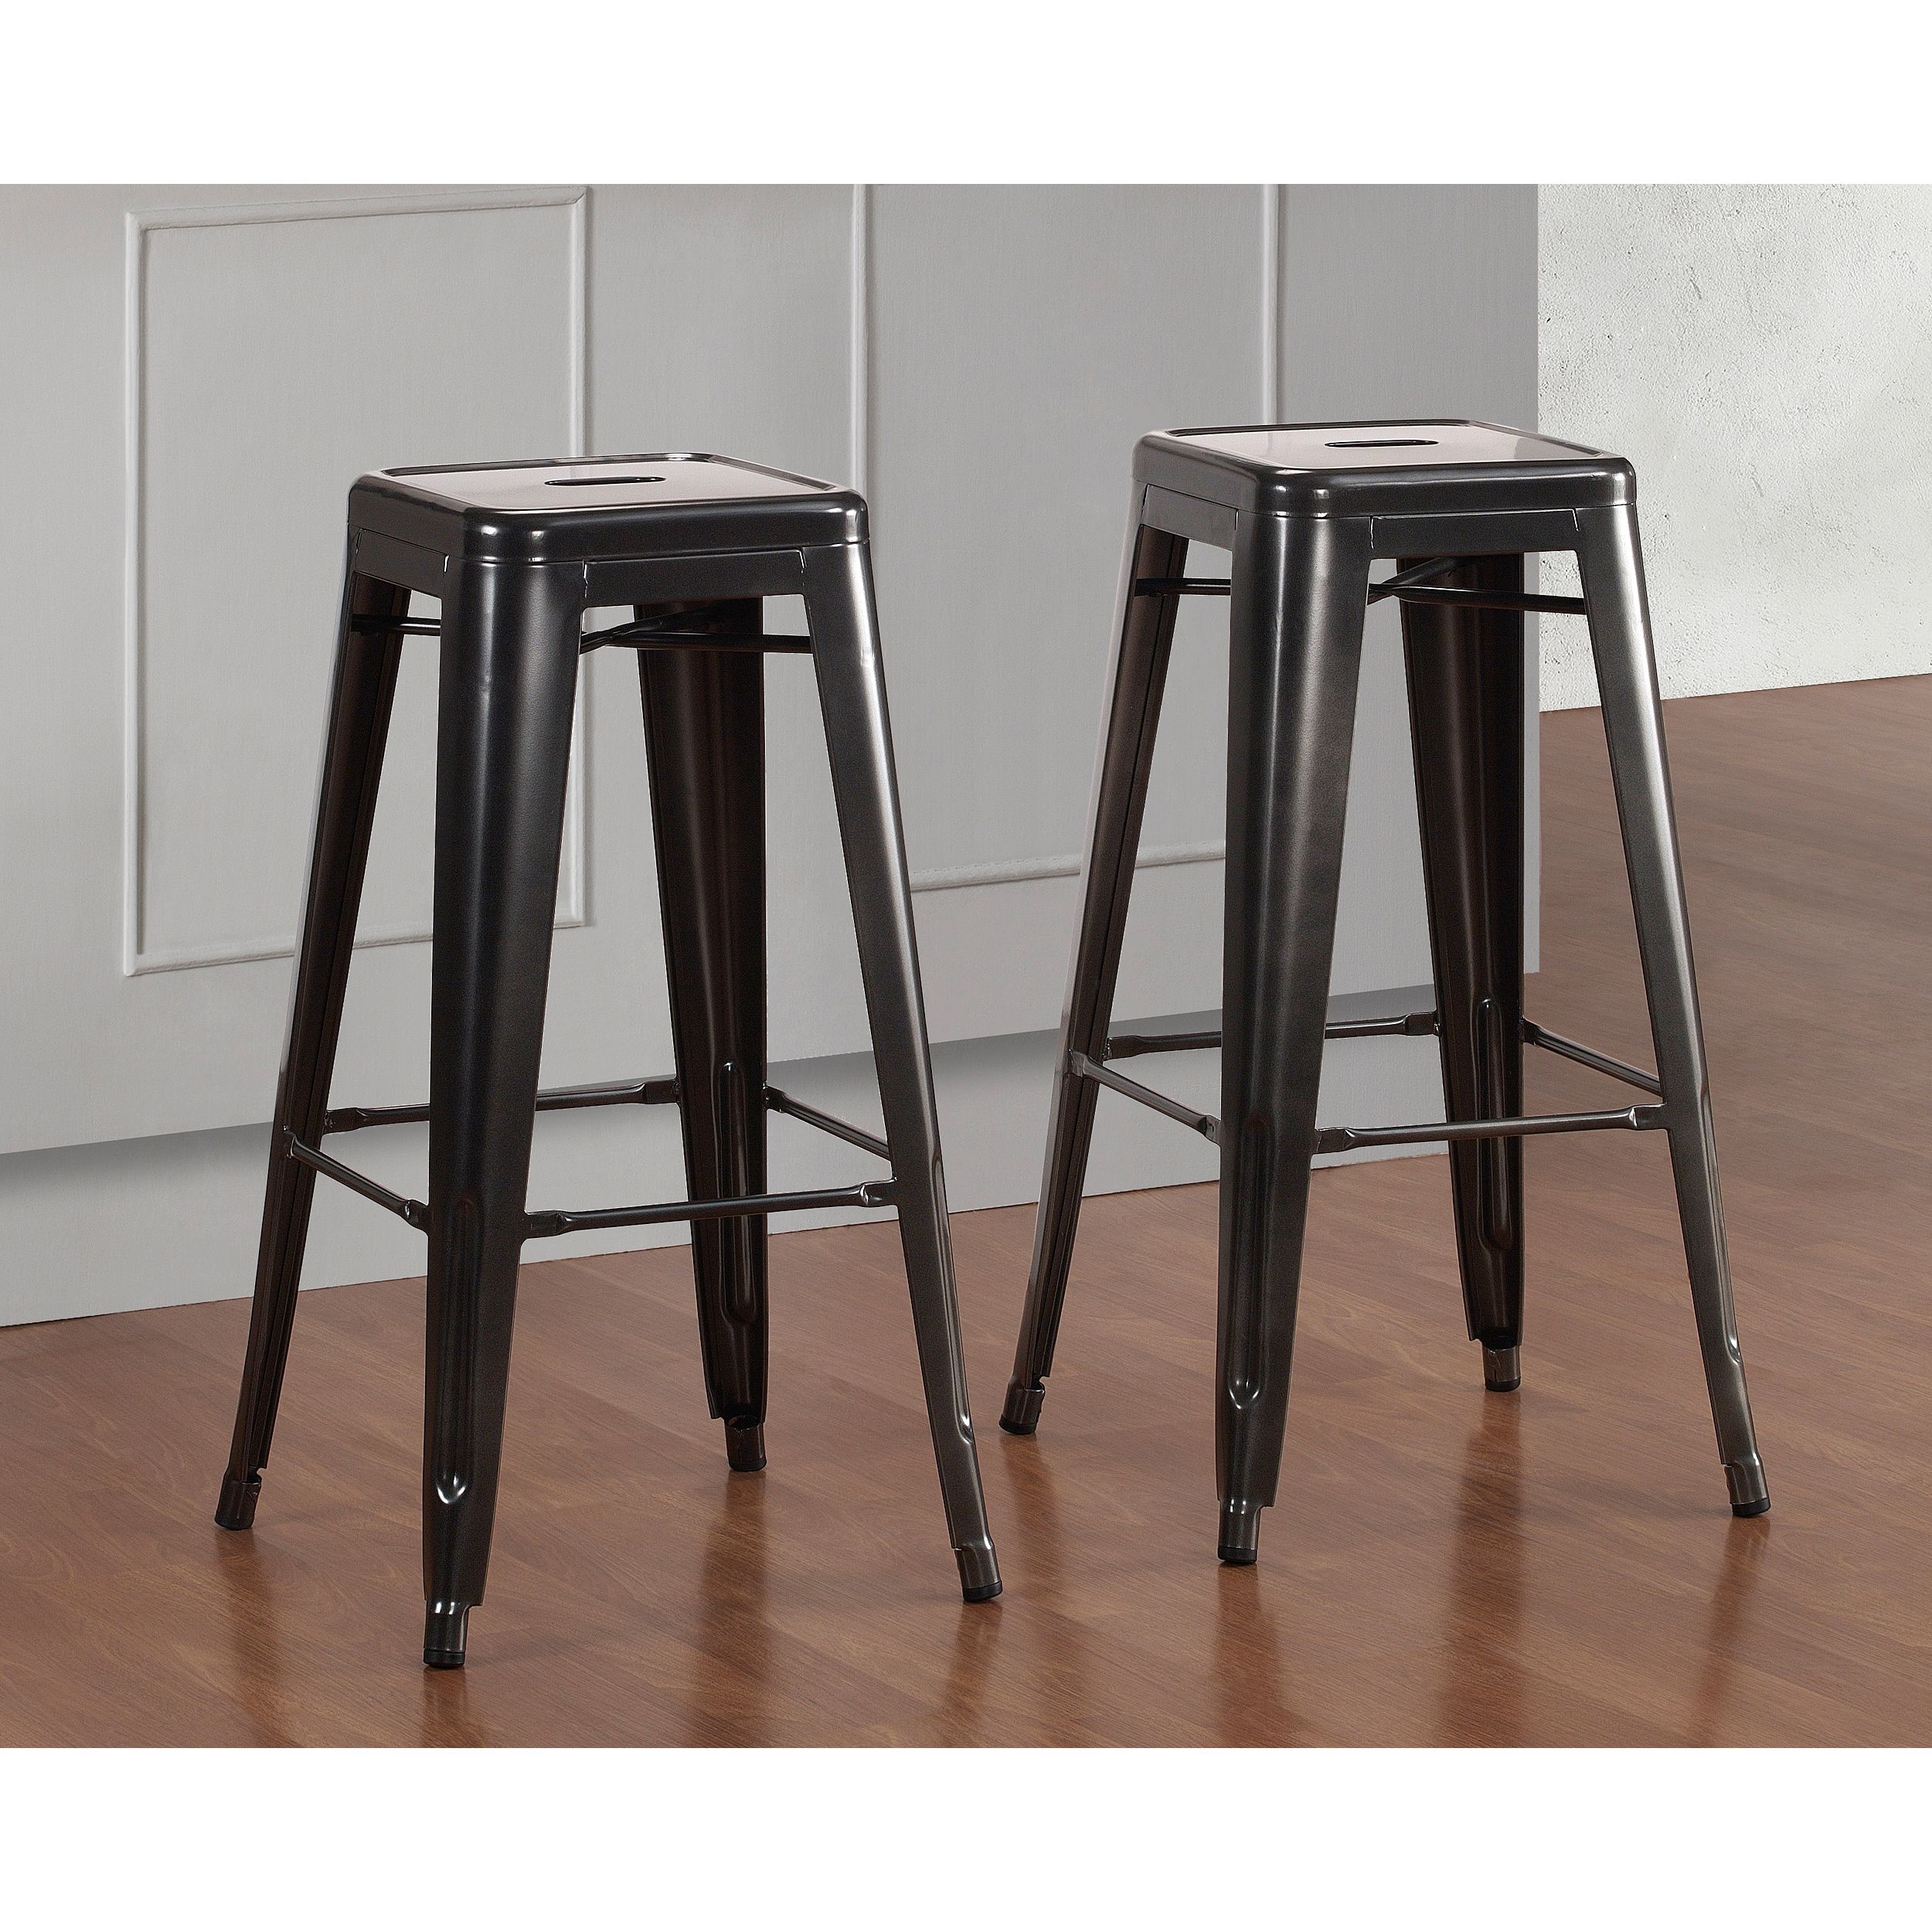 Tabourets Easy Tabouret 30 Inch Charcoal Grey Metal Bar Stools Set Of 2